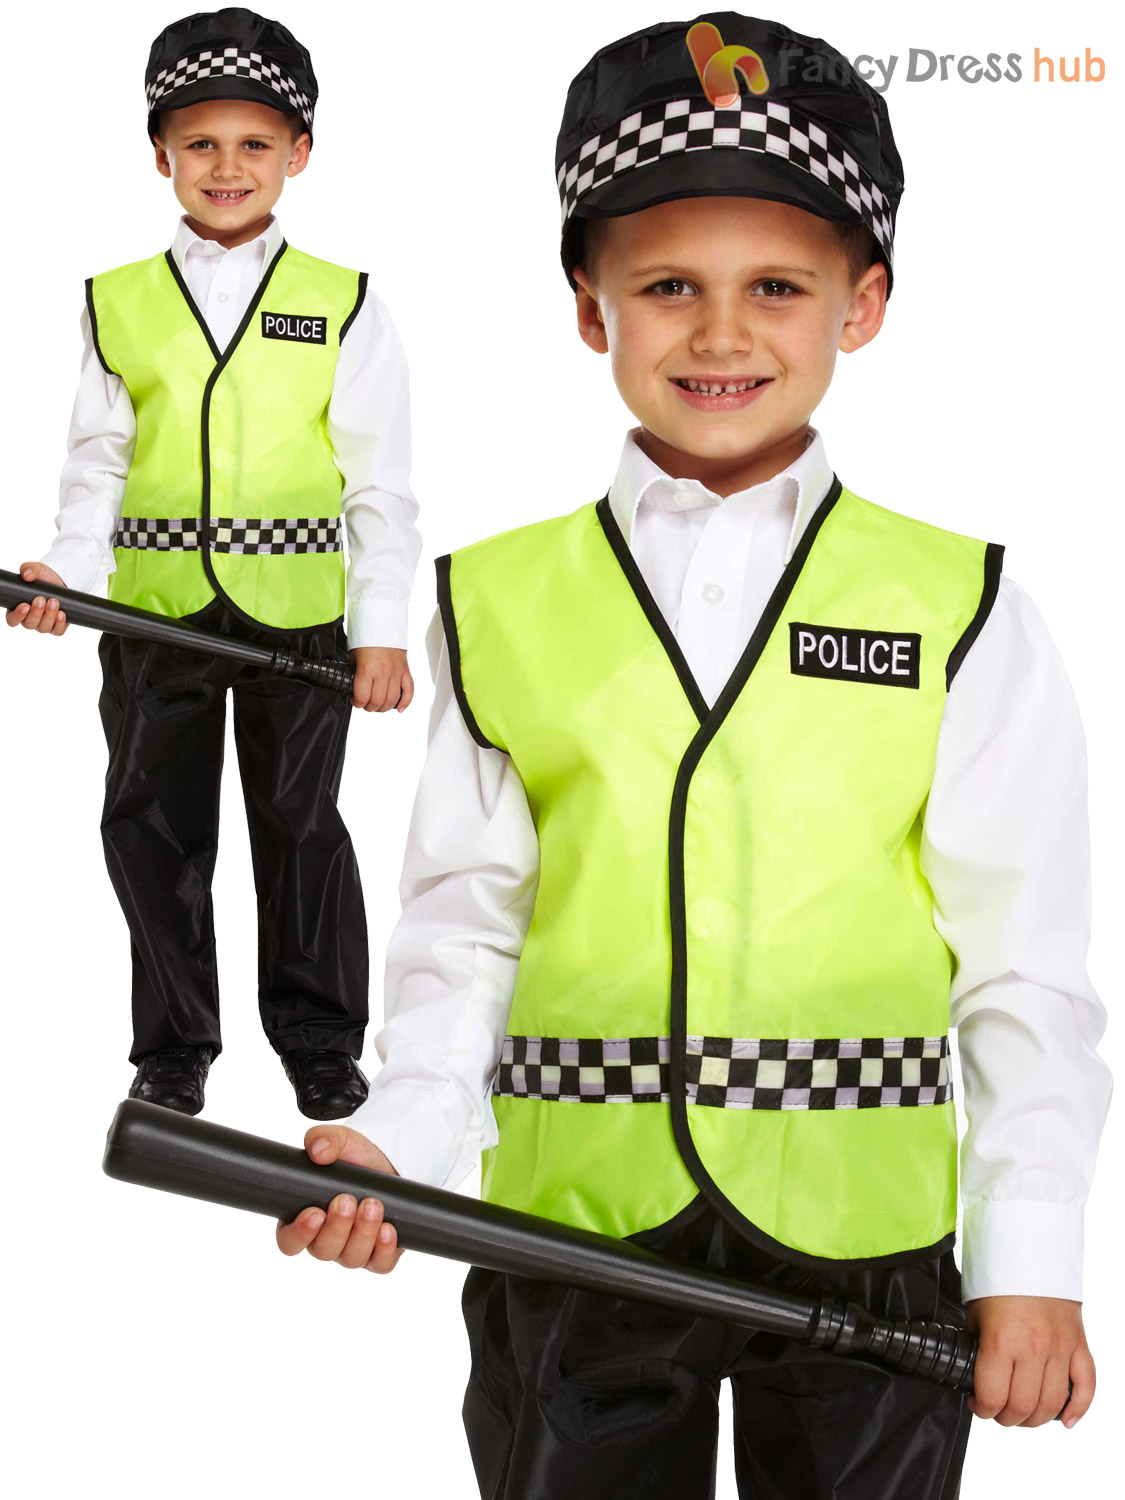 Boys-Policeman-Fancy-Dress-Costume-Child-Police-Constable-  sc 1 st  eBay & Boys Policeman Fancy Dress Costume Child Police Constable Kids ...